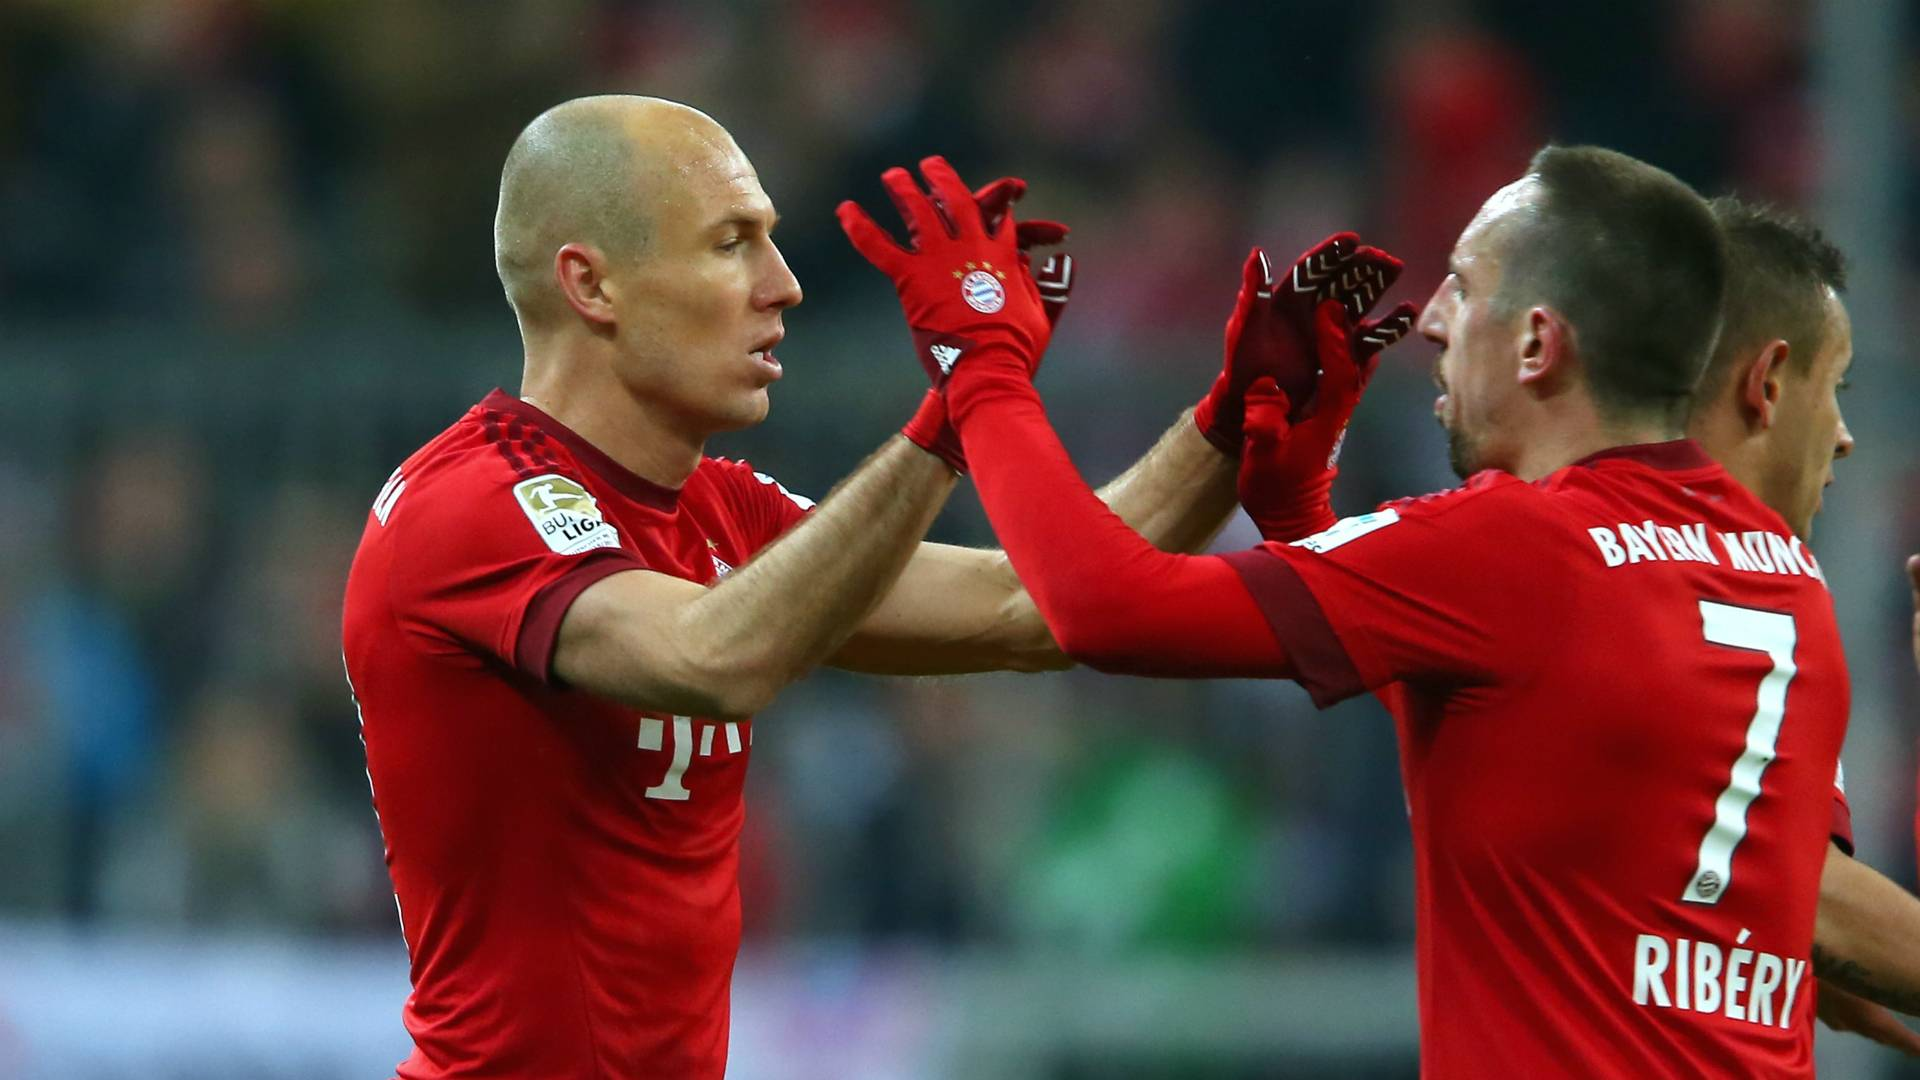 Arjen Robben and Franck Ribery considered 'too old to play' in China